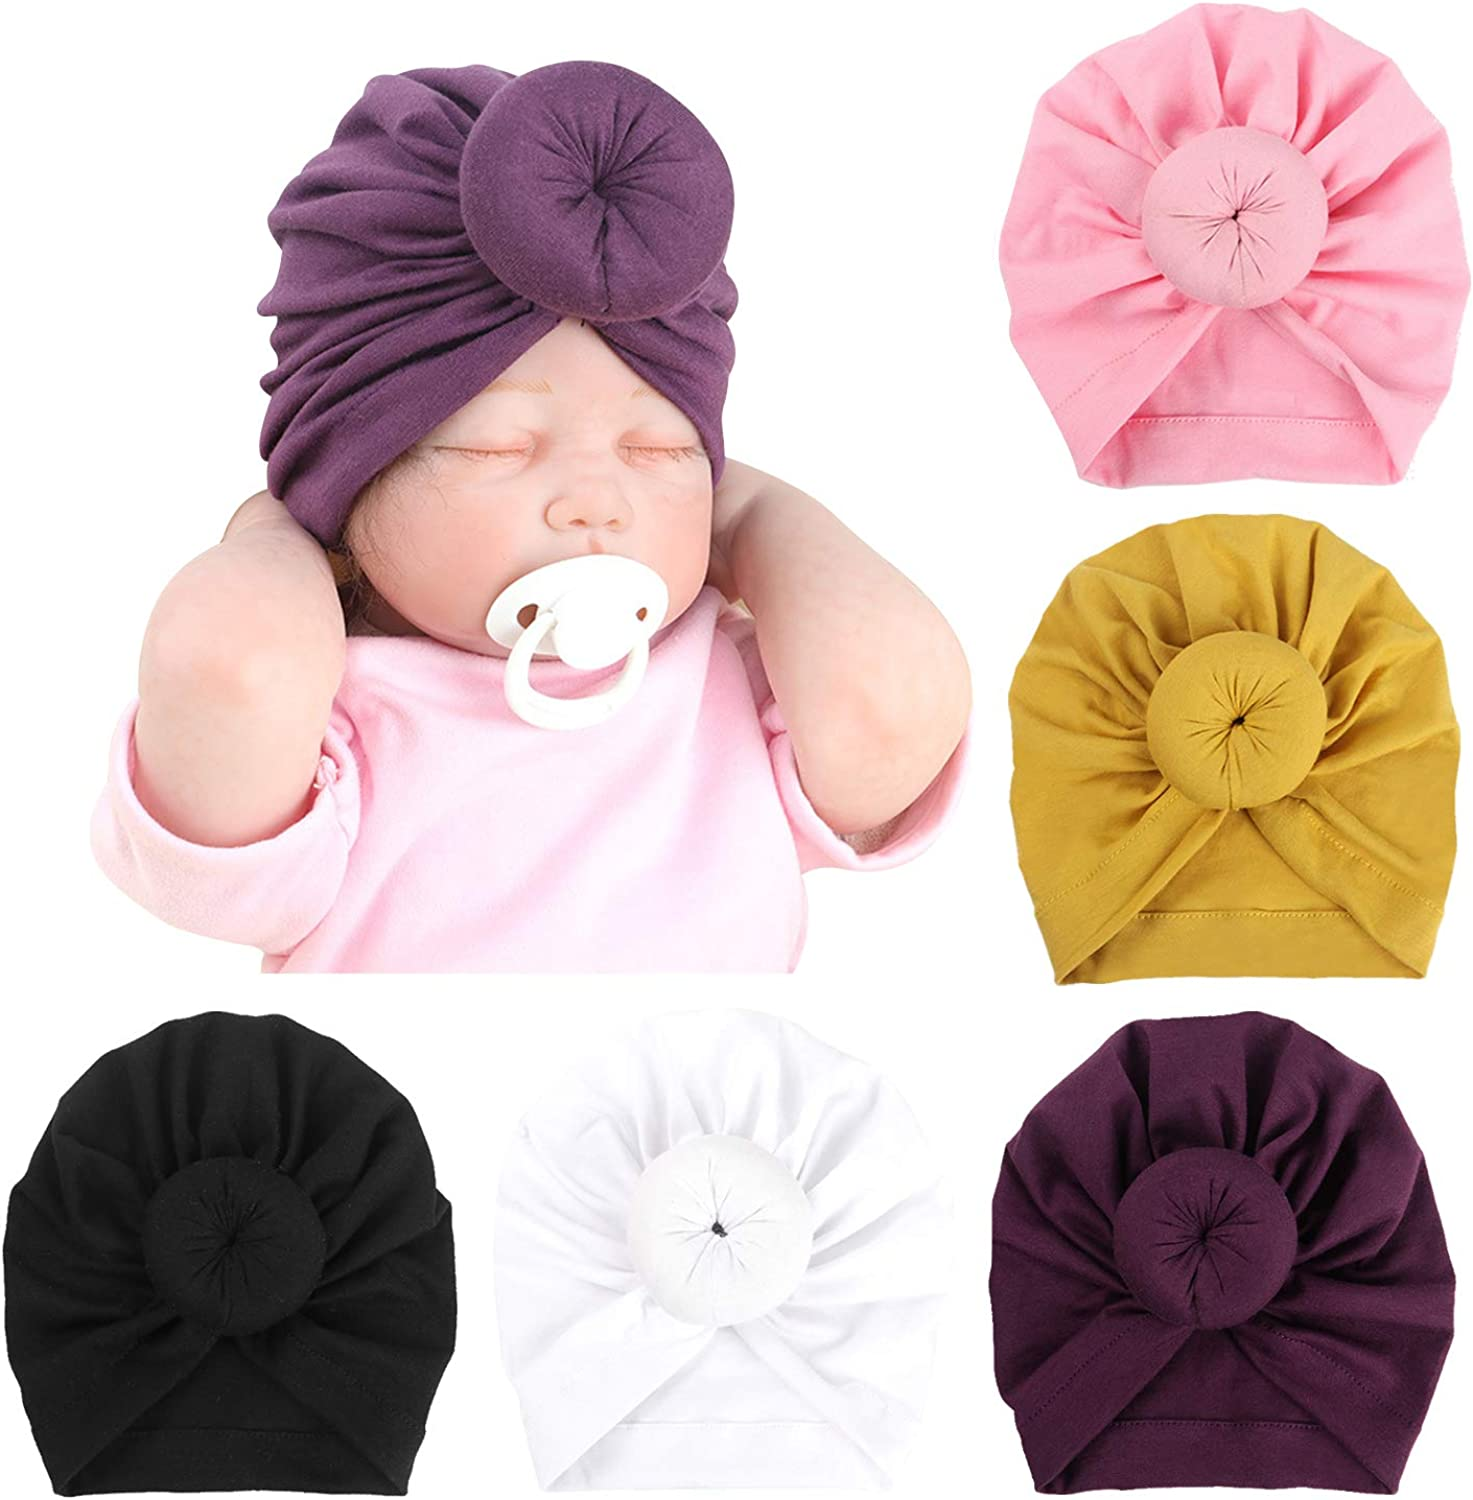 A 6 Pcs Baby Turban Hats Knot Baby Infant Beanie Baby Girl Soft Cute Toddler Cap Hospital Hat N